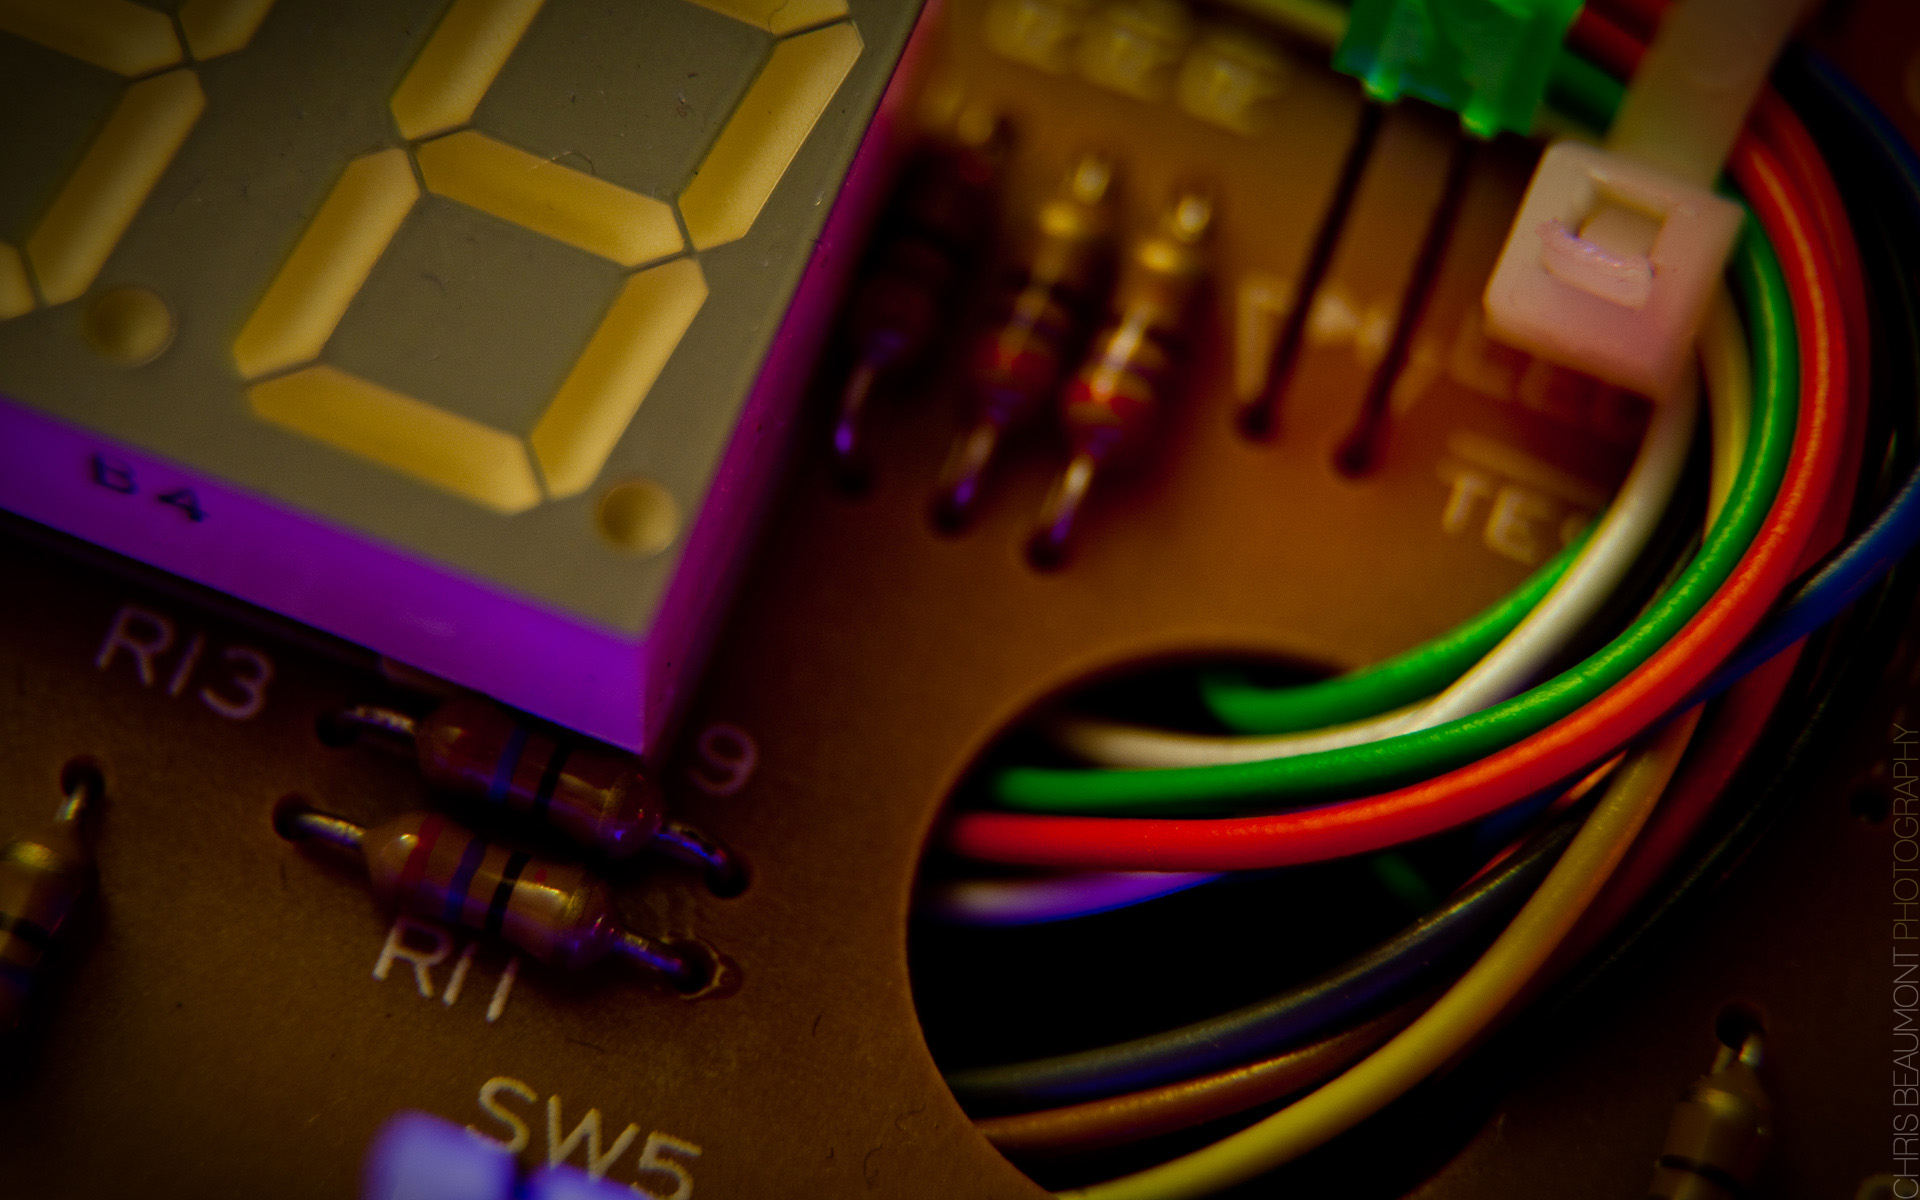 electronics-widescreen-macro-wallpaper-background-48002